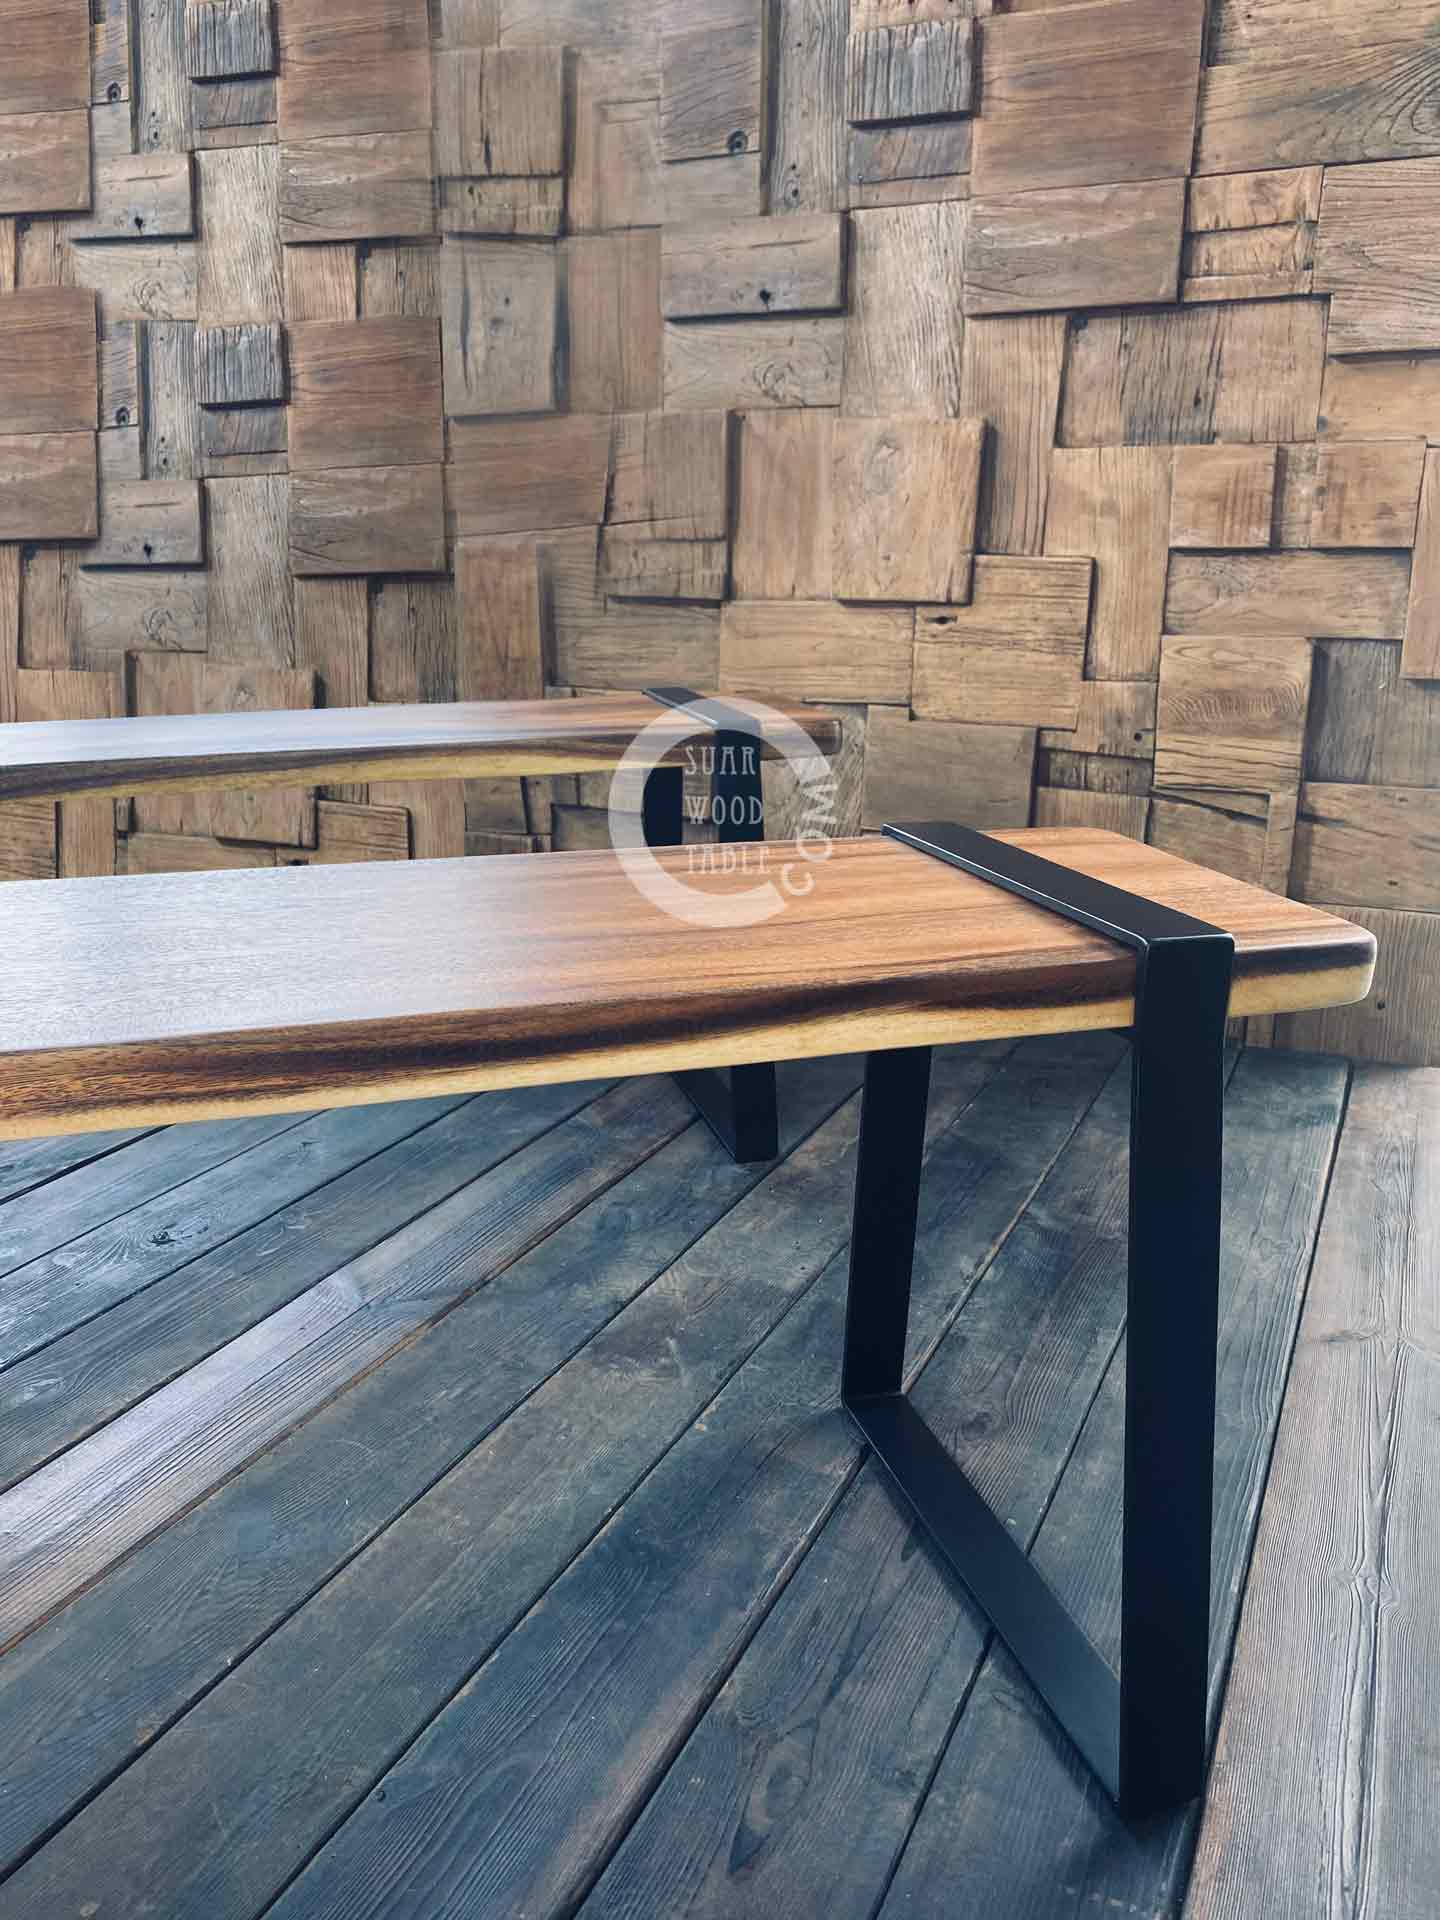 Robson wooden benches